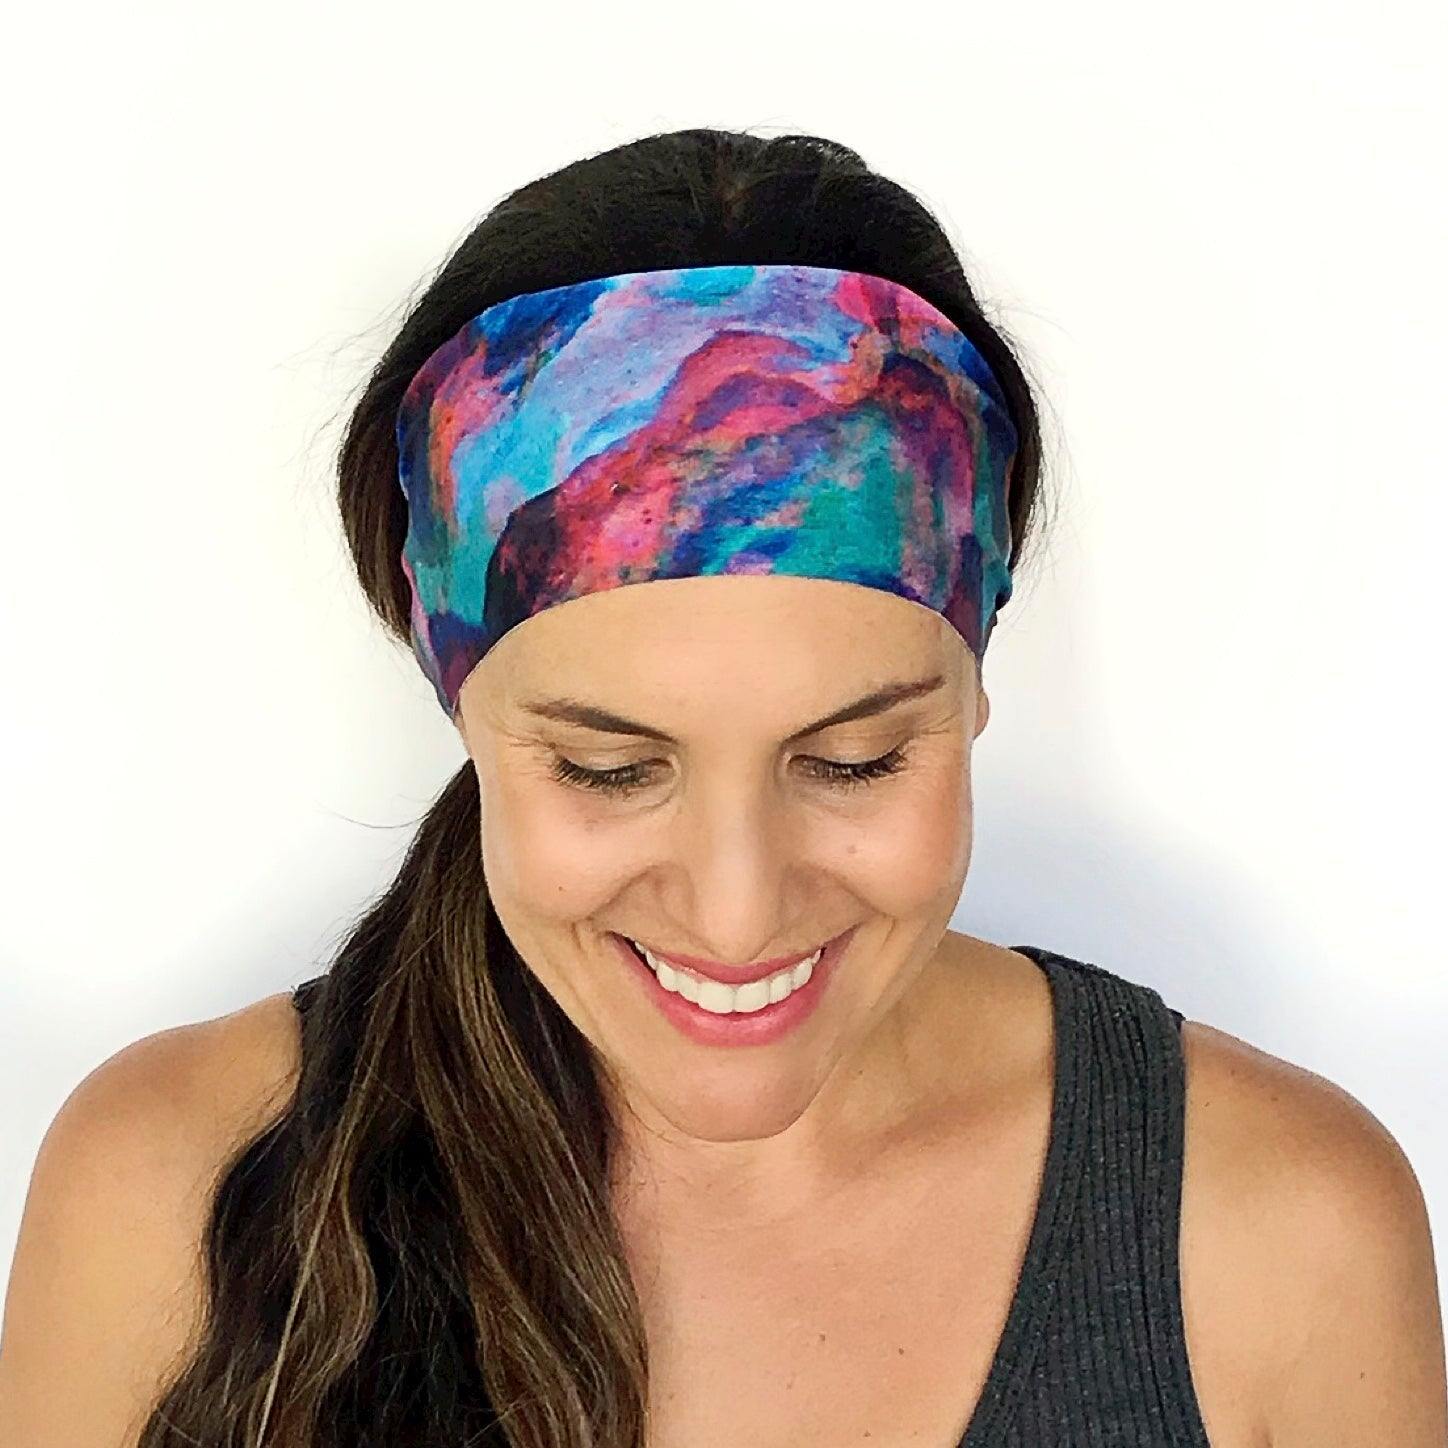 Taurus Workout Headband